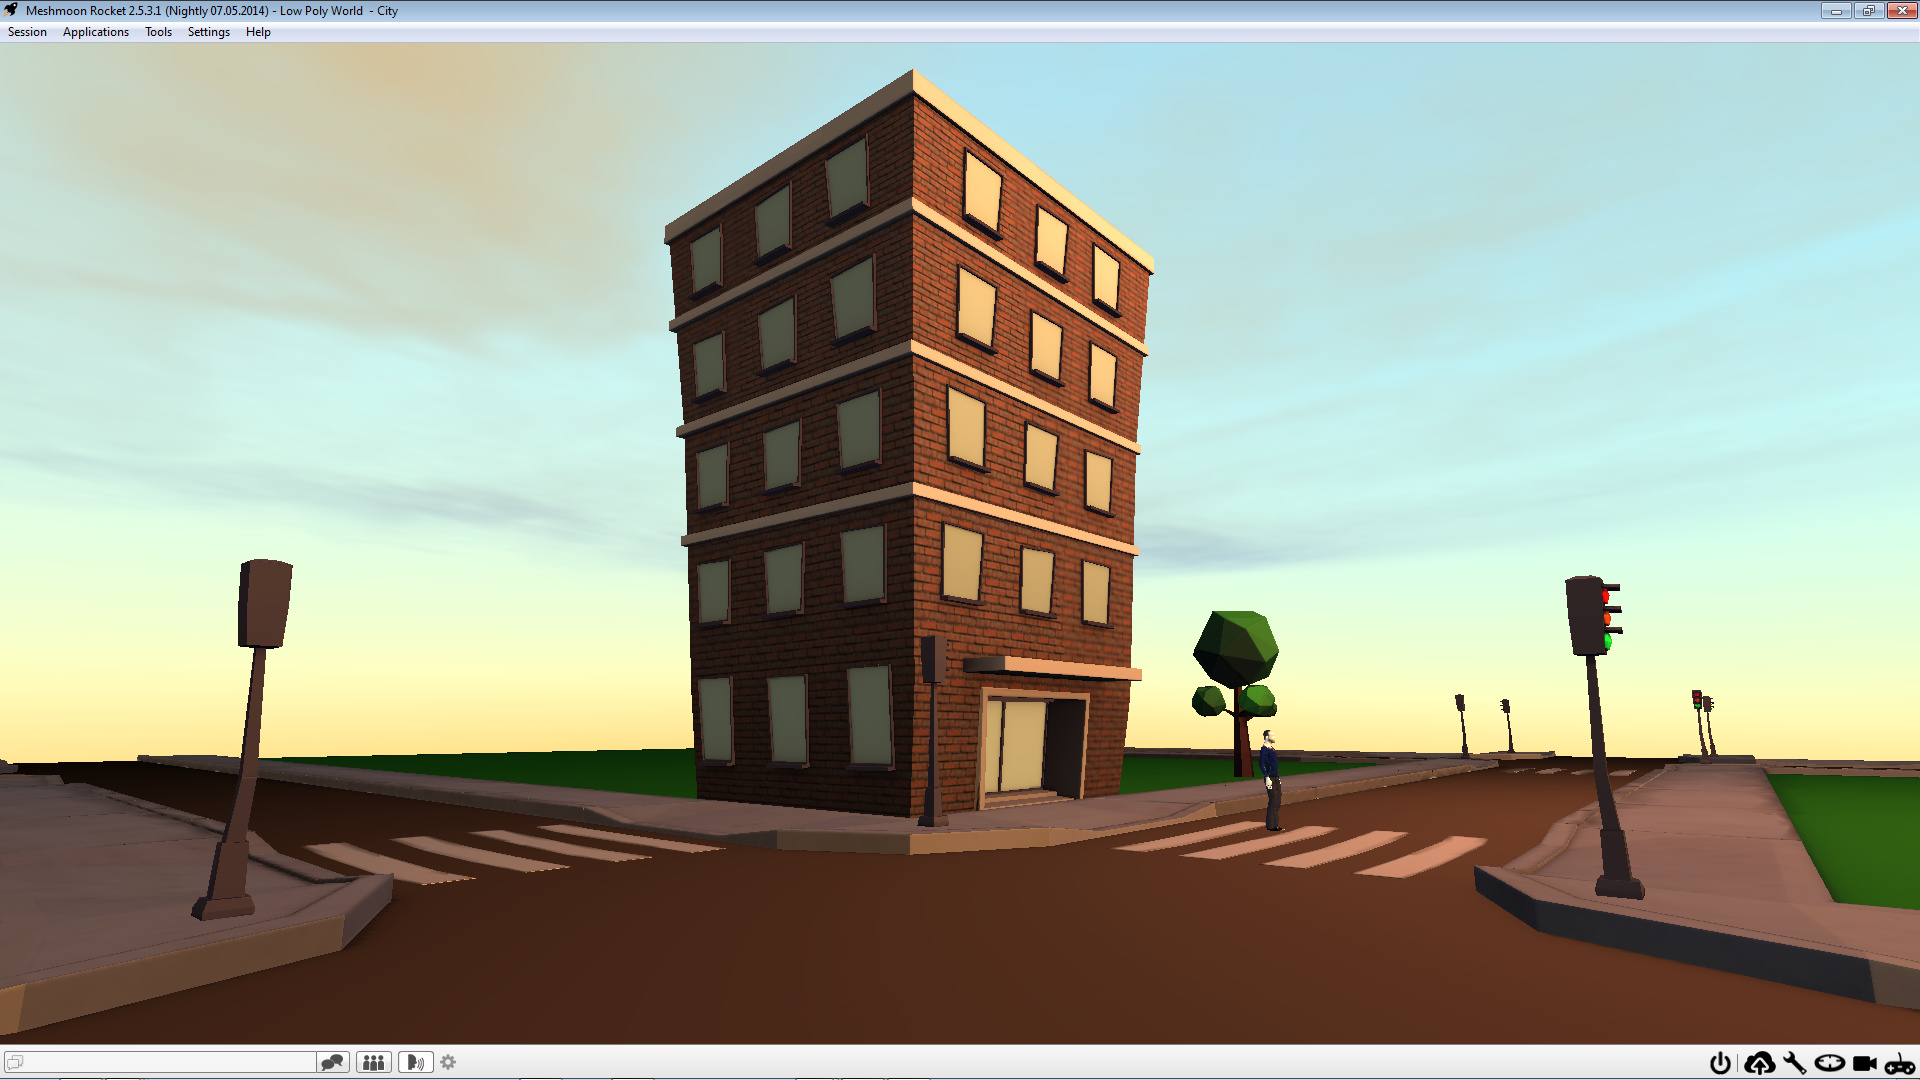 Blender to Meshmoon  Low Poly World City- Project - Works in